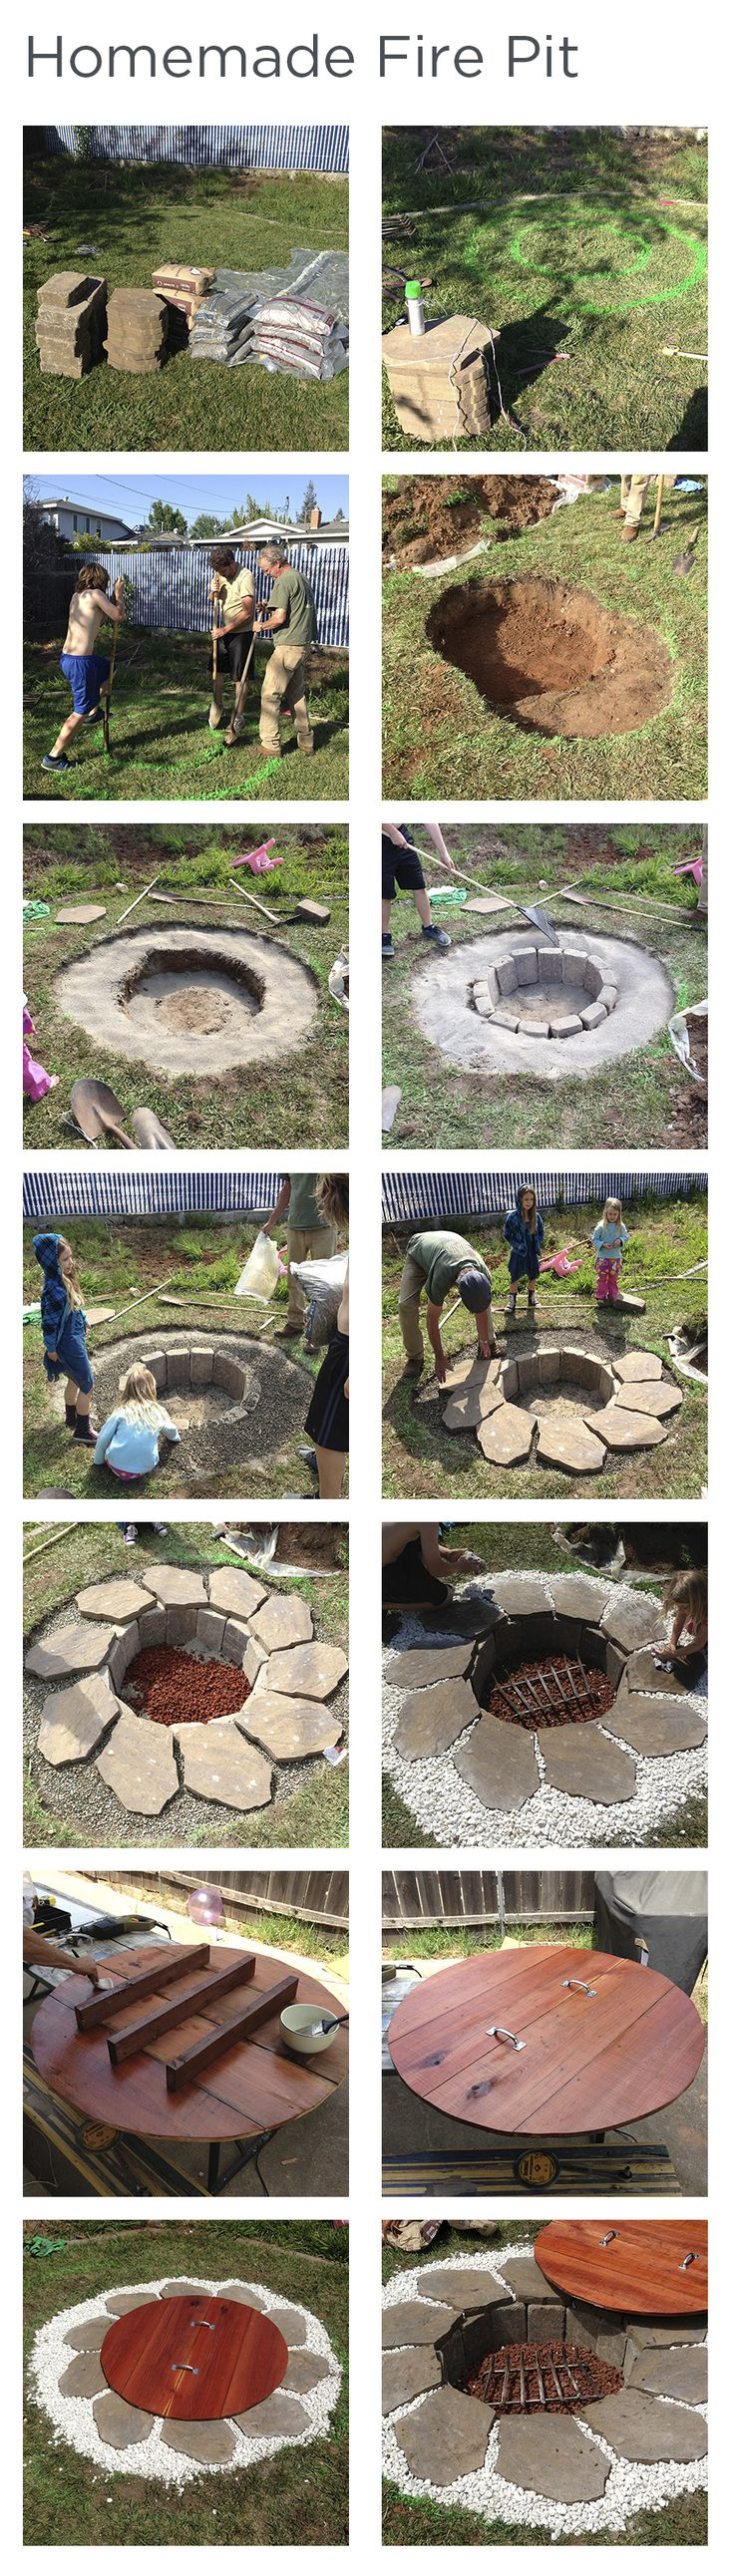 A do-it-yourself step-by-step guide to building your own homemade, in-ground fire pit complete with redwood lid. Main fire hole is 3' in diameter and the entire pit has a diameter of 7'. Fire pit is about 1' deep. Made with leveling sand, gravel, lava rock, decorative rock, stones/brick, stepping stones, redwood (2x4 and 1x12s), handles and a fire grate. Enjoy!!